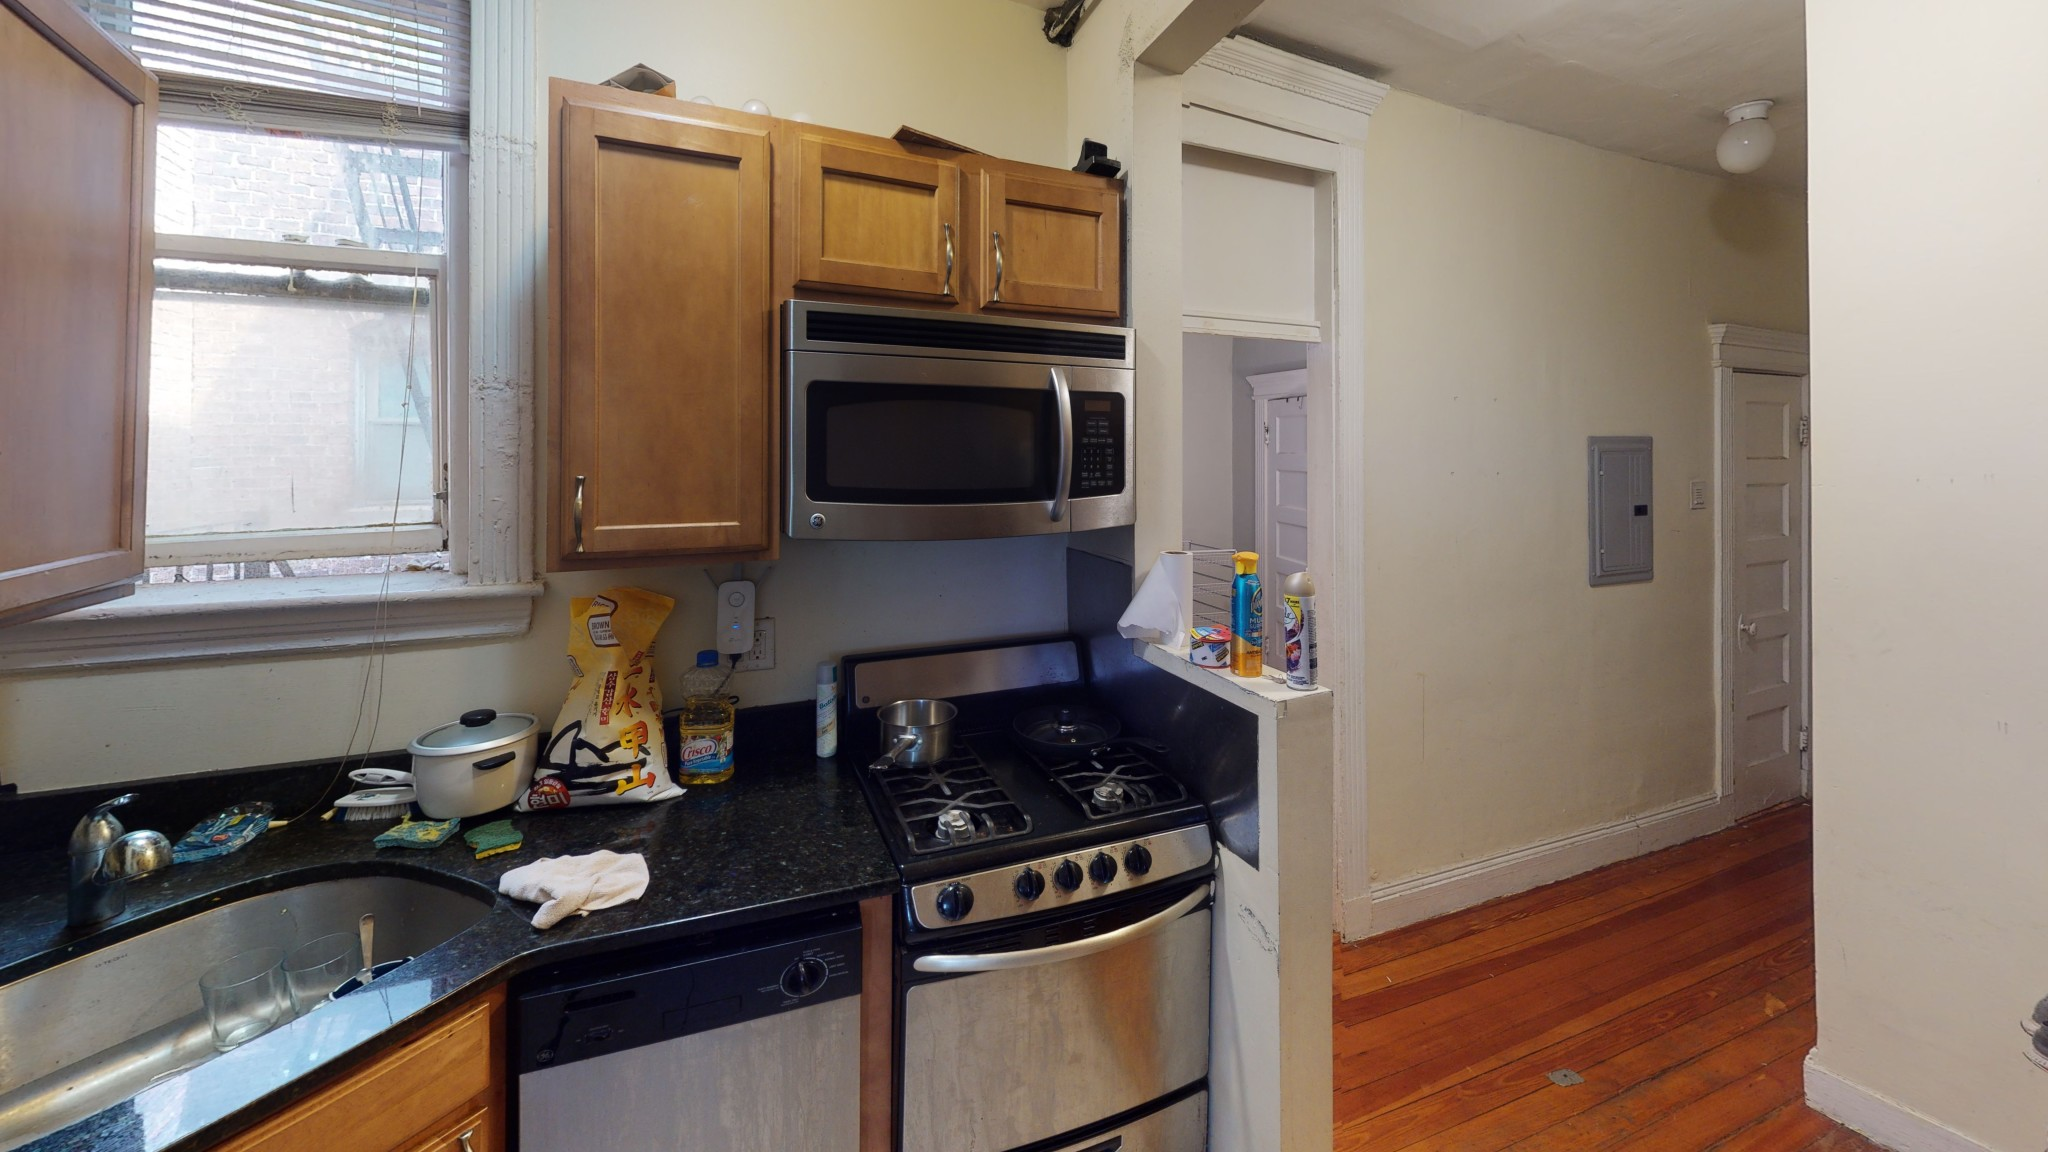 2 Beds, 1 Bath apartment in Boston, Fenway for $1,995